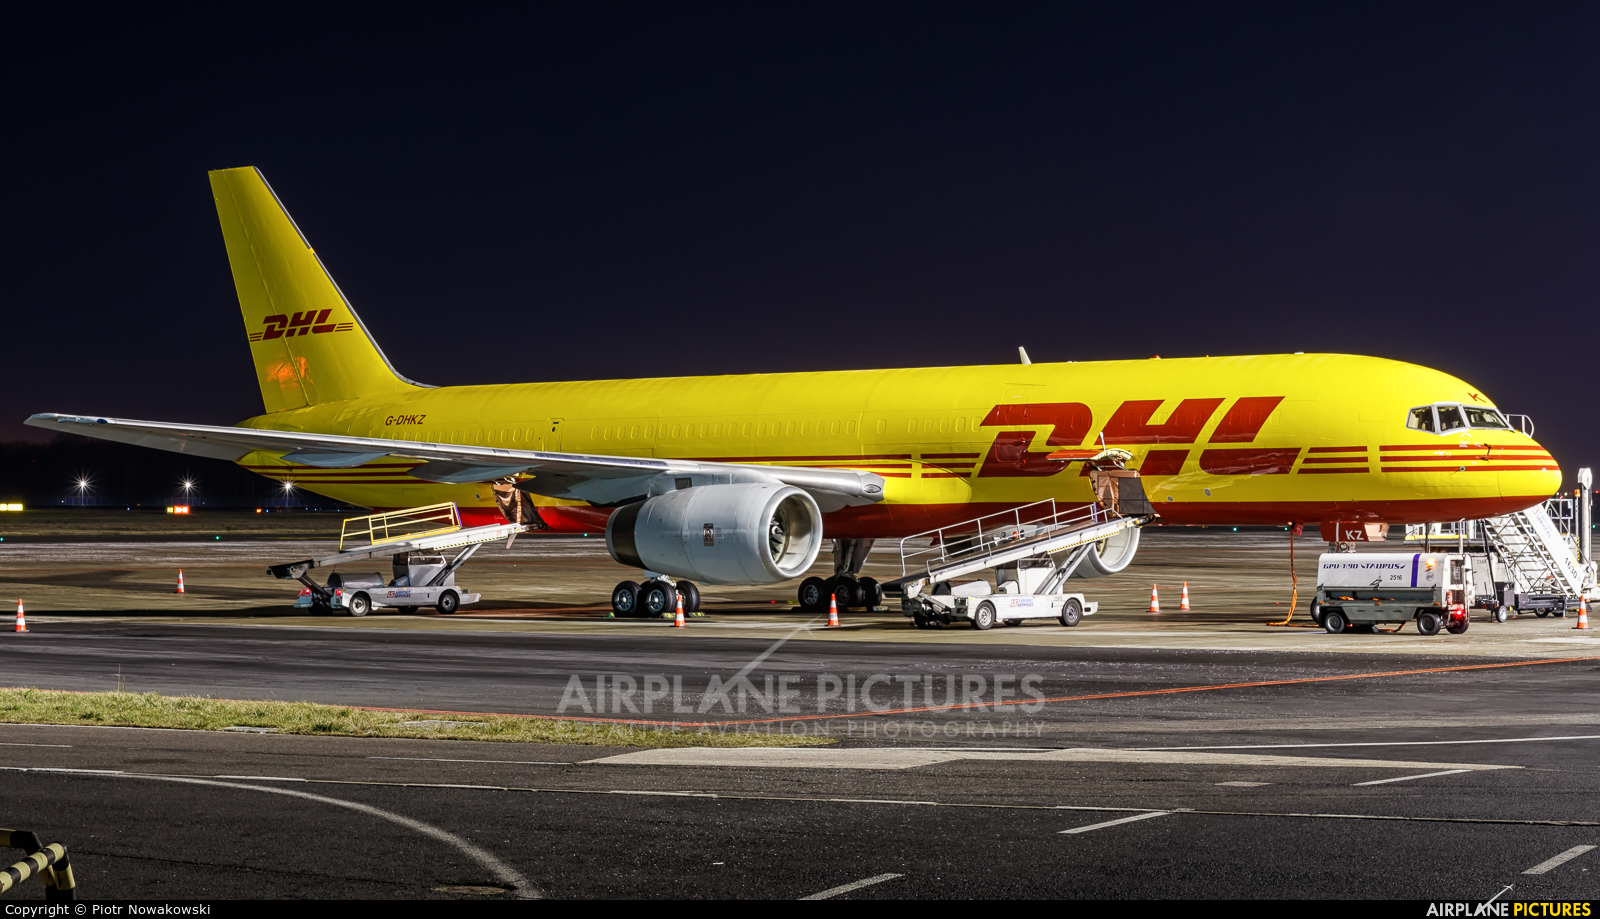 DHL Cargo G-DHKZ aircraft at Warsaw - Frederic Chopin